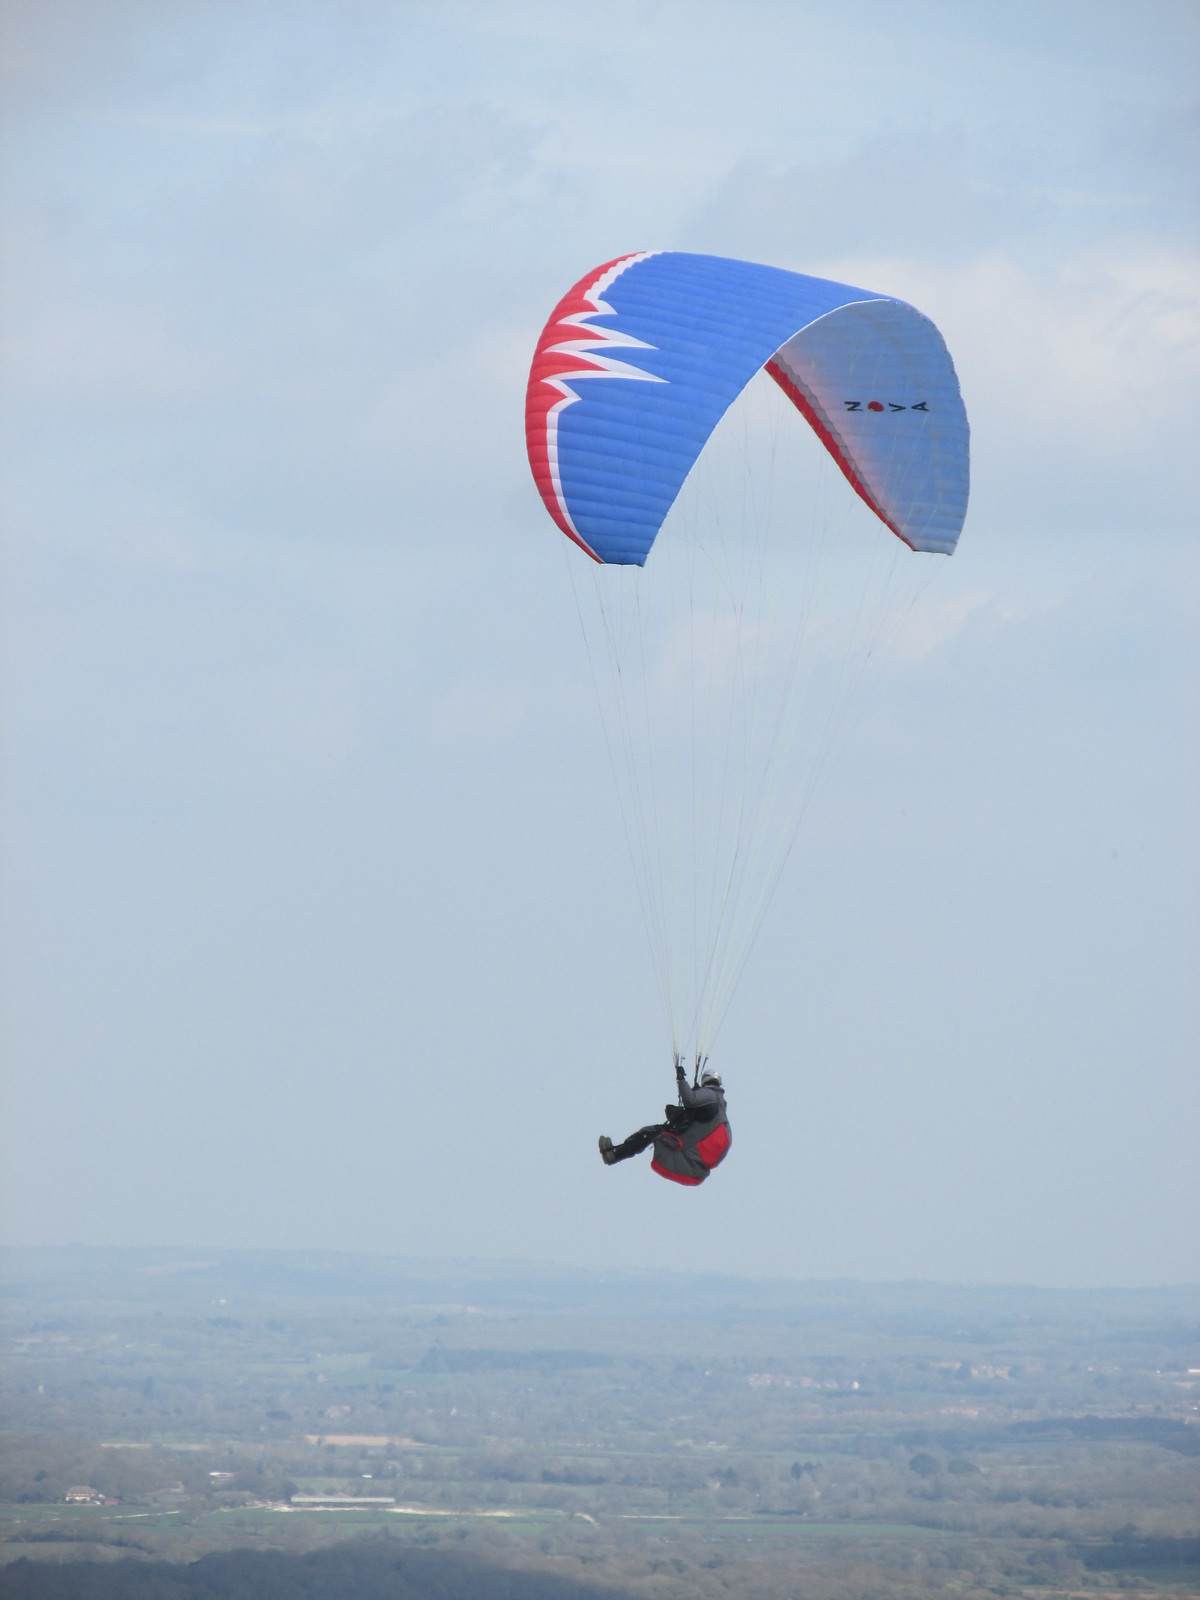 April 6, 2015: Glynde to Seaford Hang glider over South Downs